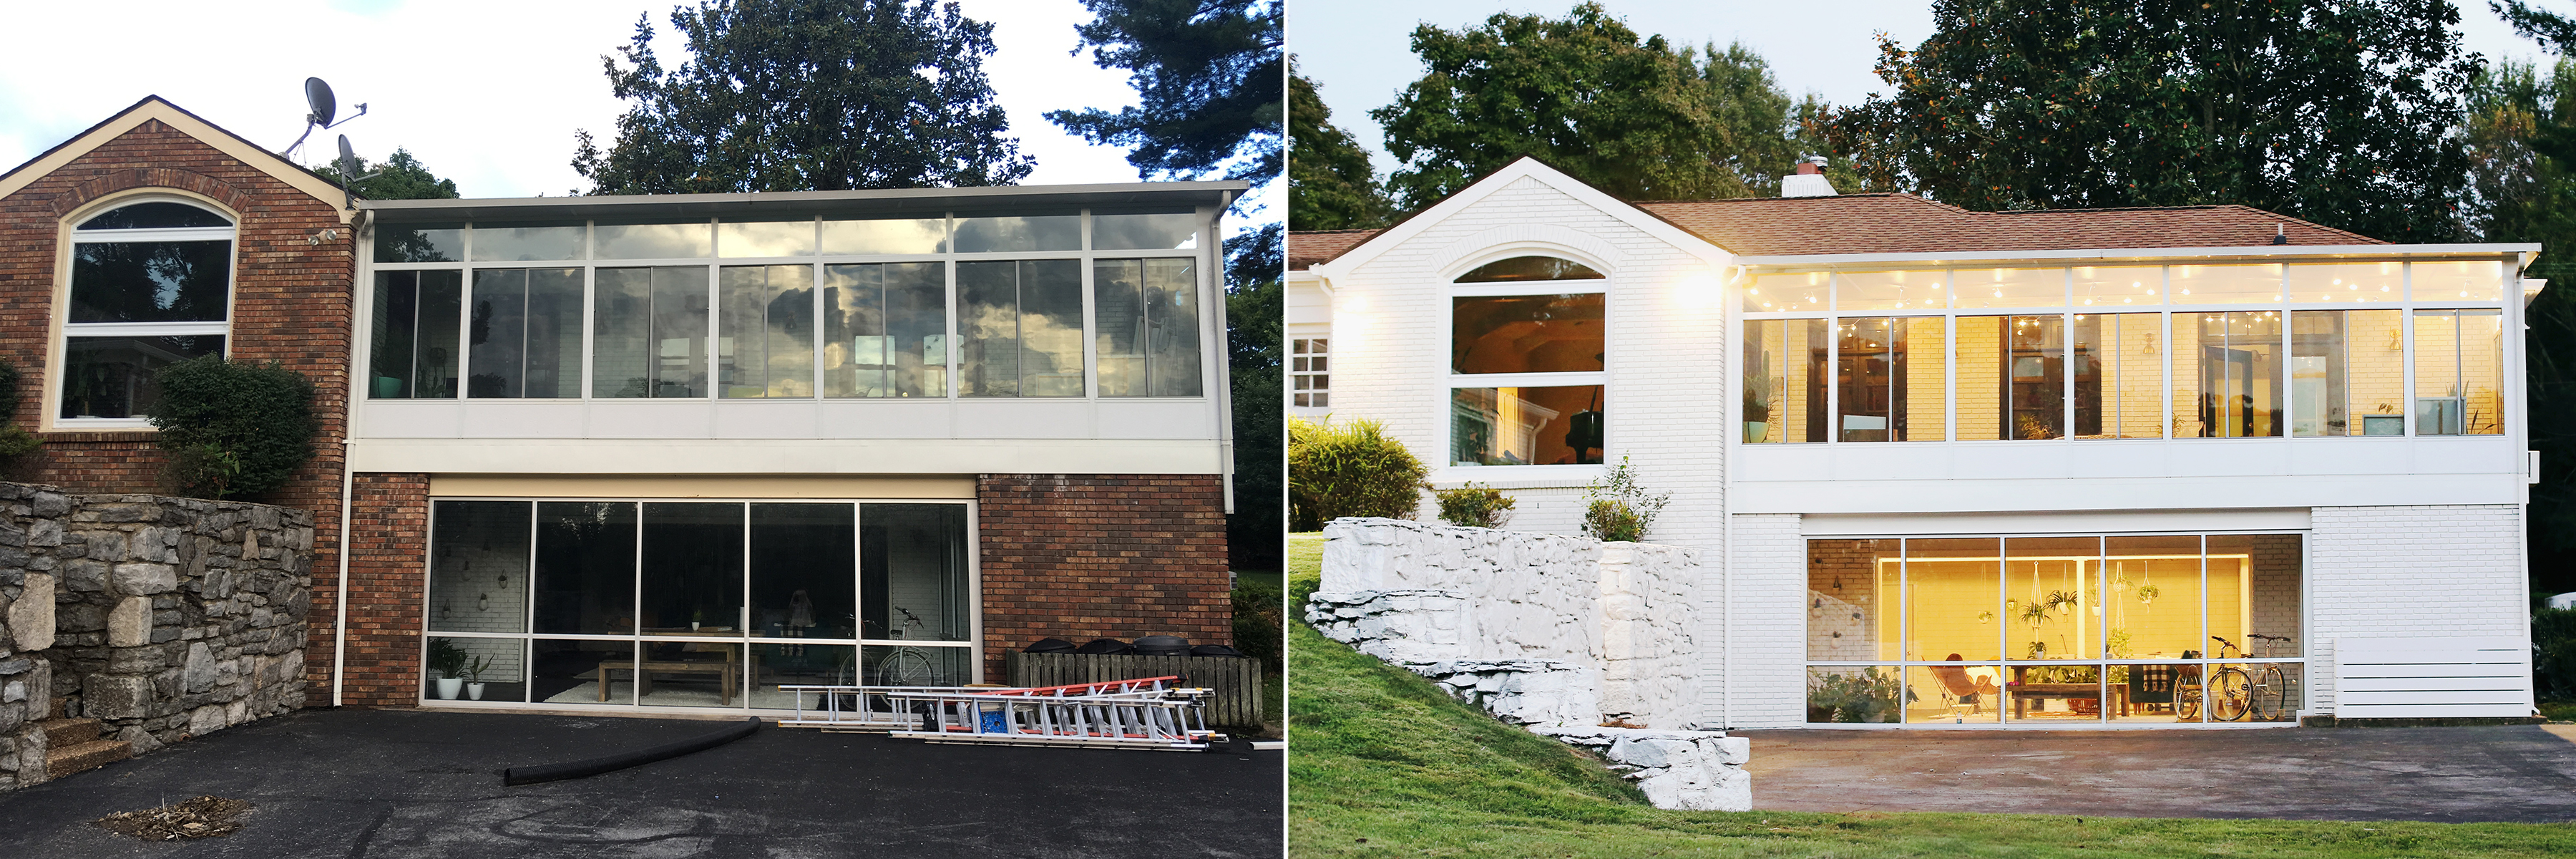 Before:After Back of the house!